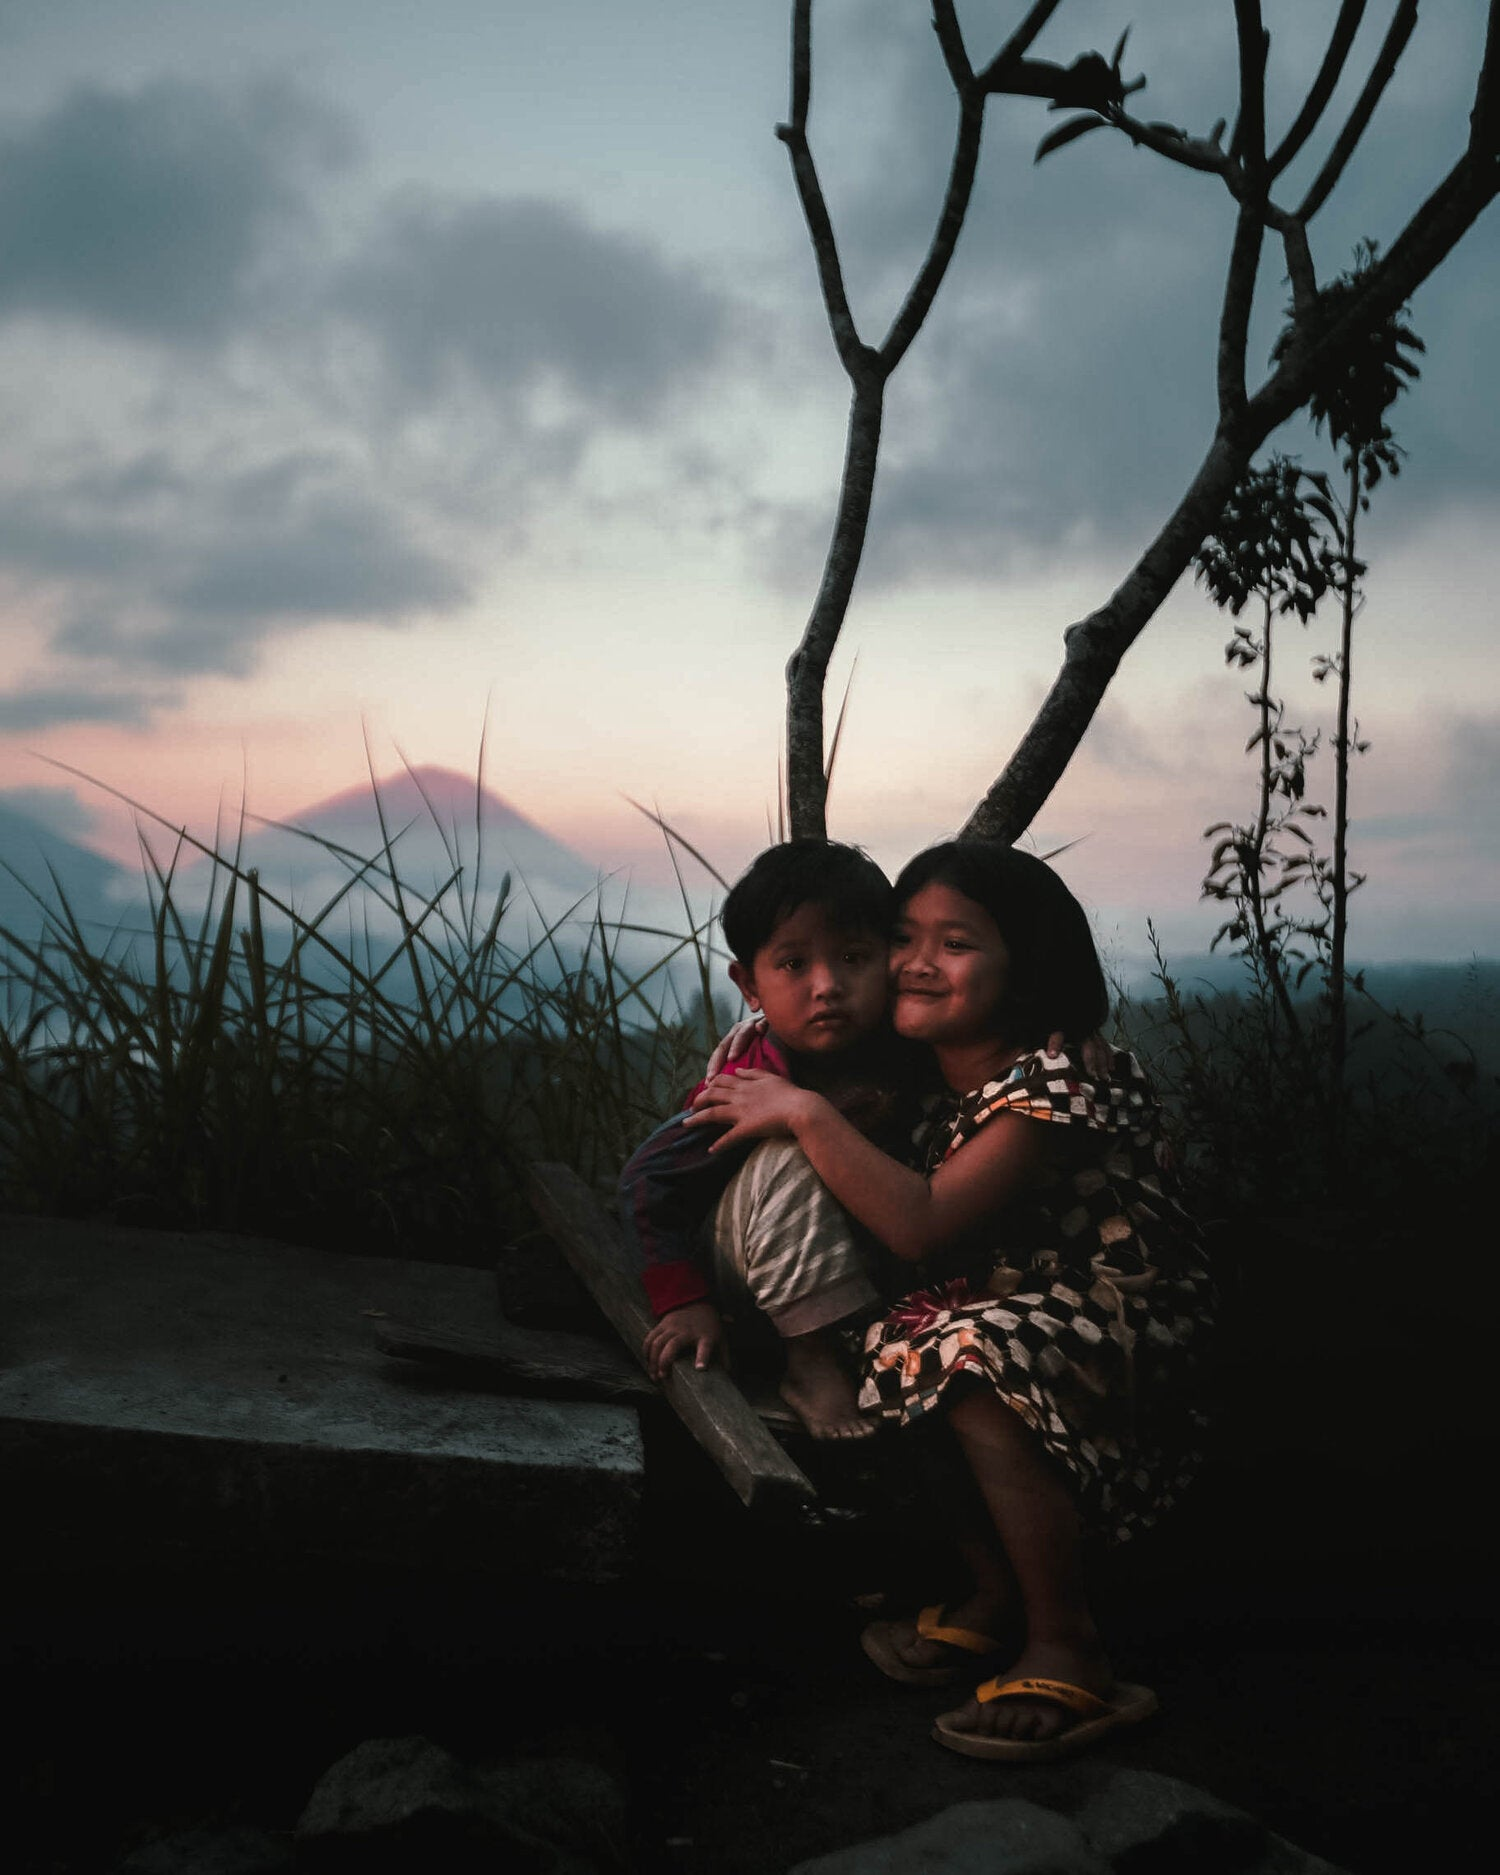 Two Balinese children smiling in front of Mount Agung, Bali